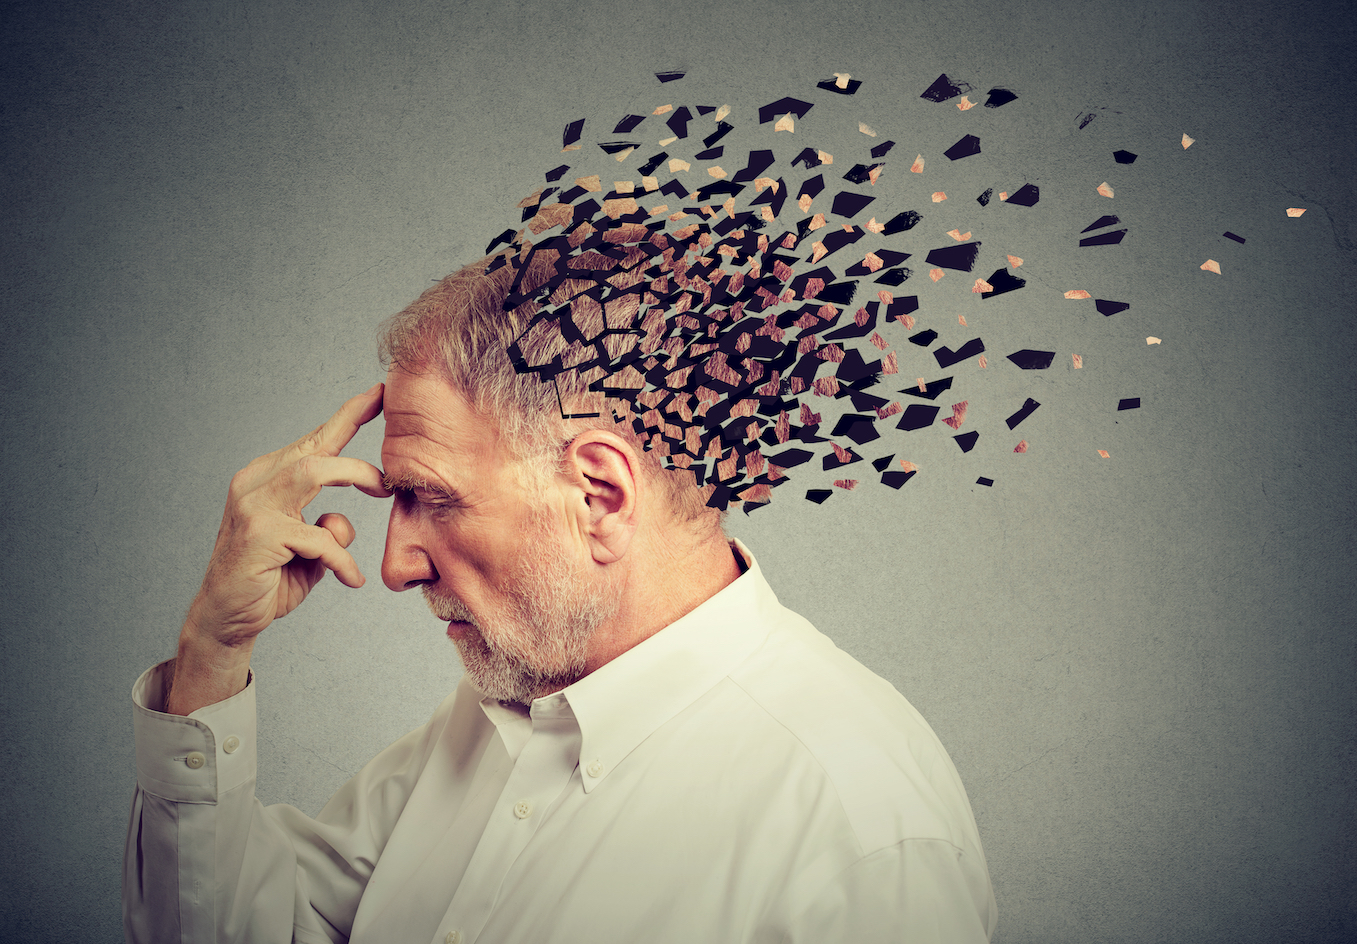 Frontotemporal Dementia: What Caregivers Can Expect